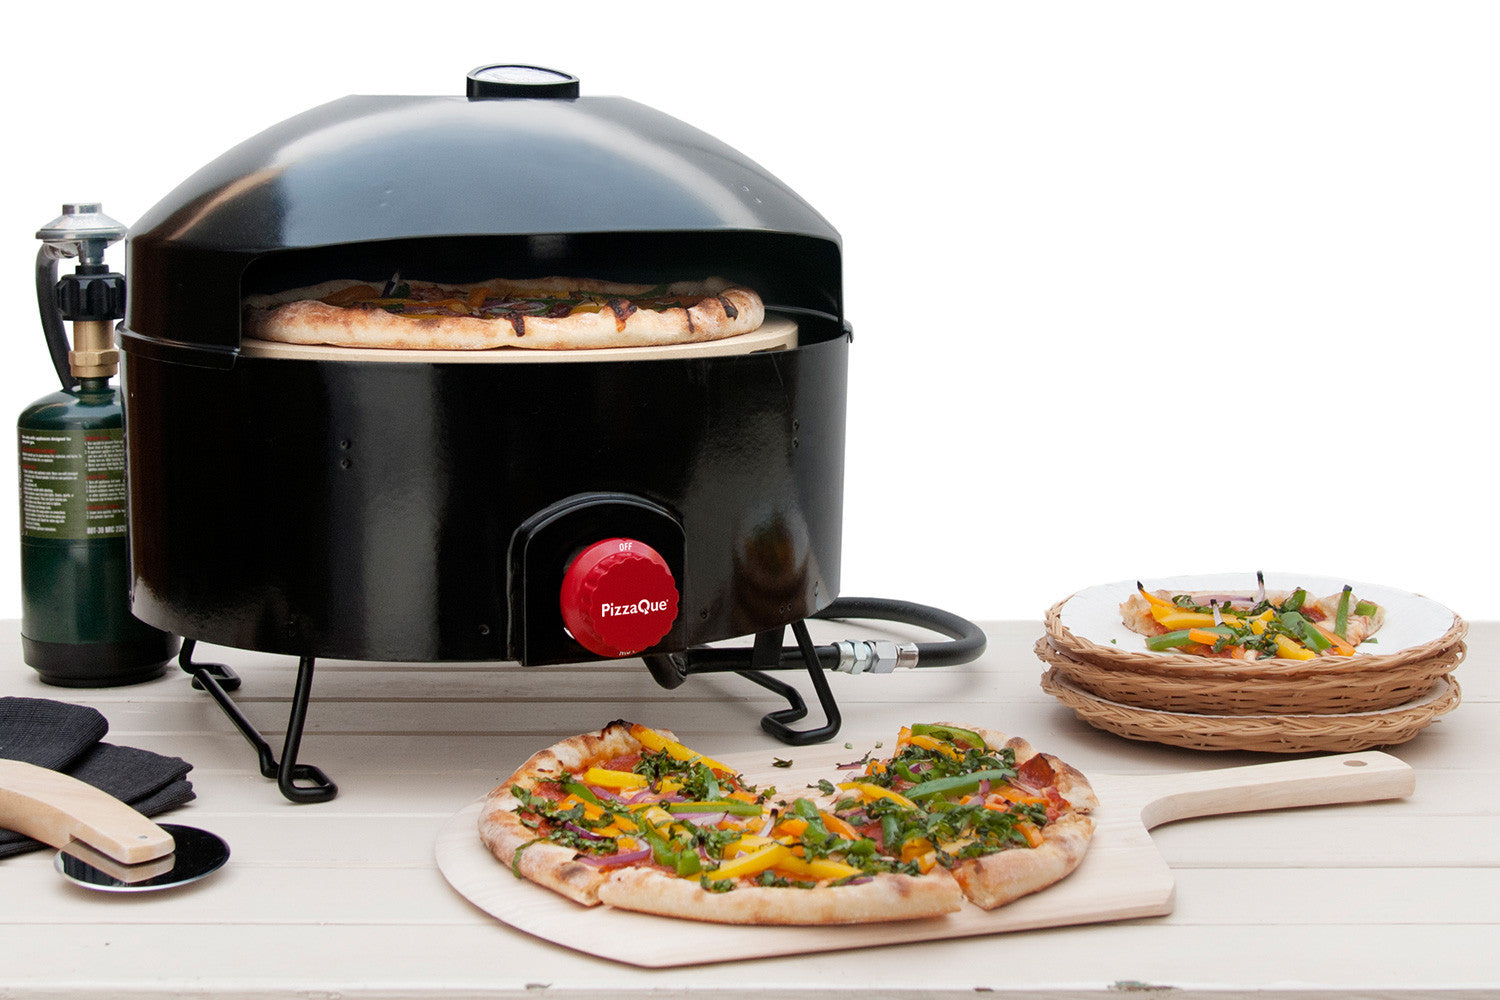 PizzaQue Portable Pizza Oven; Finished Pizzas with a PizzaQue Portable Pizza  Oven ...